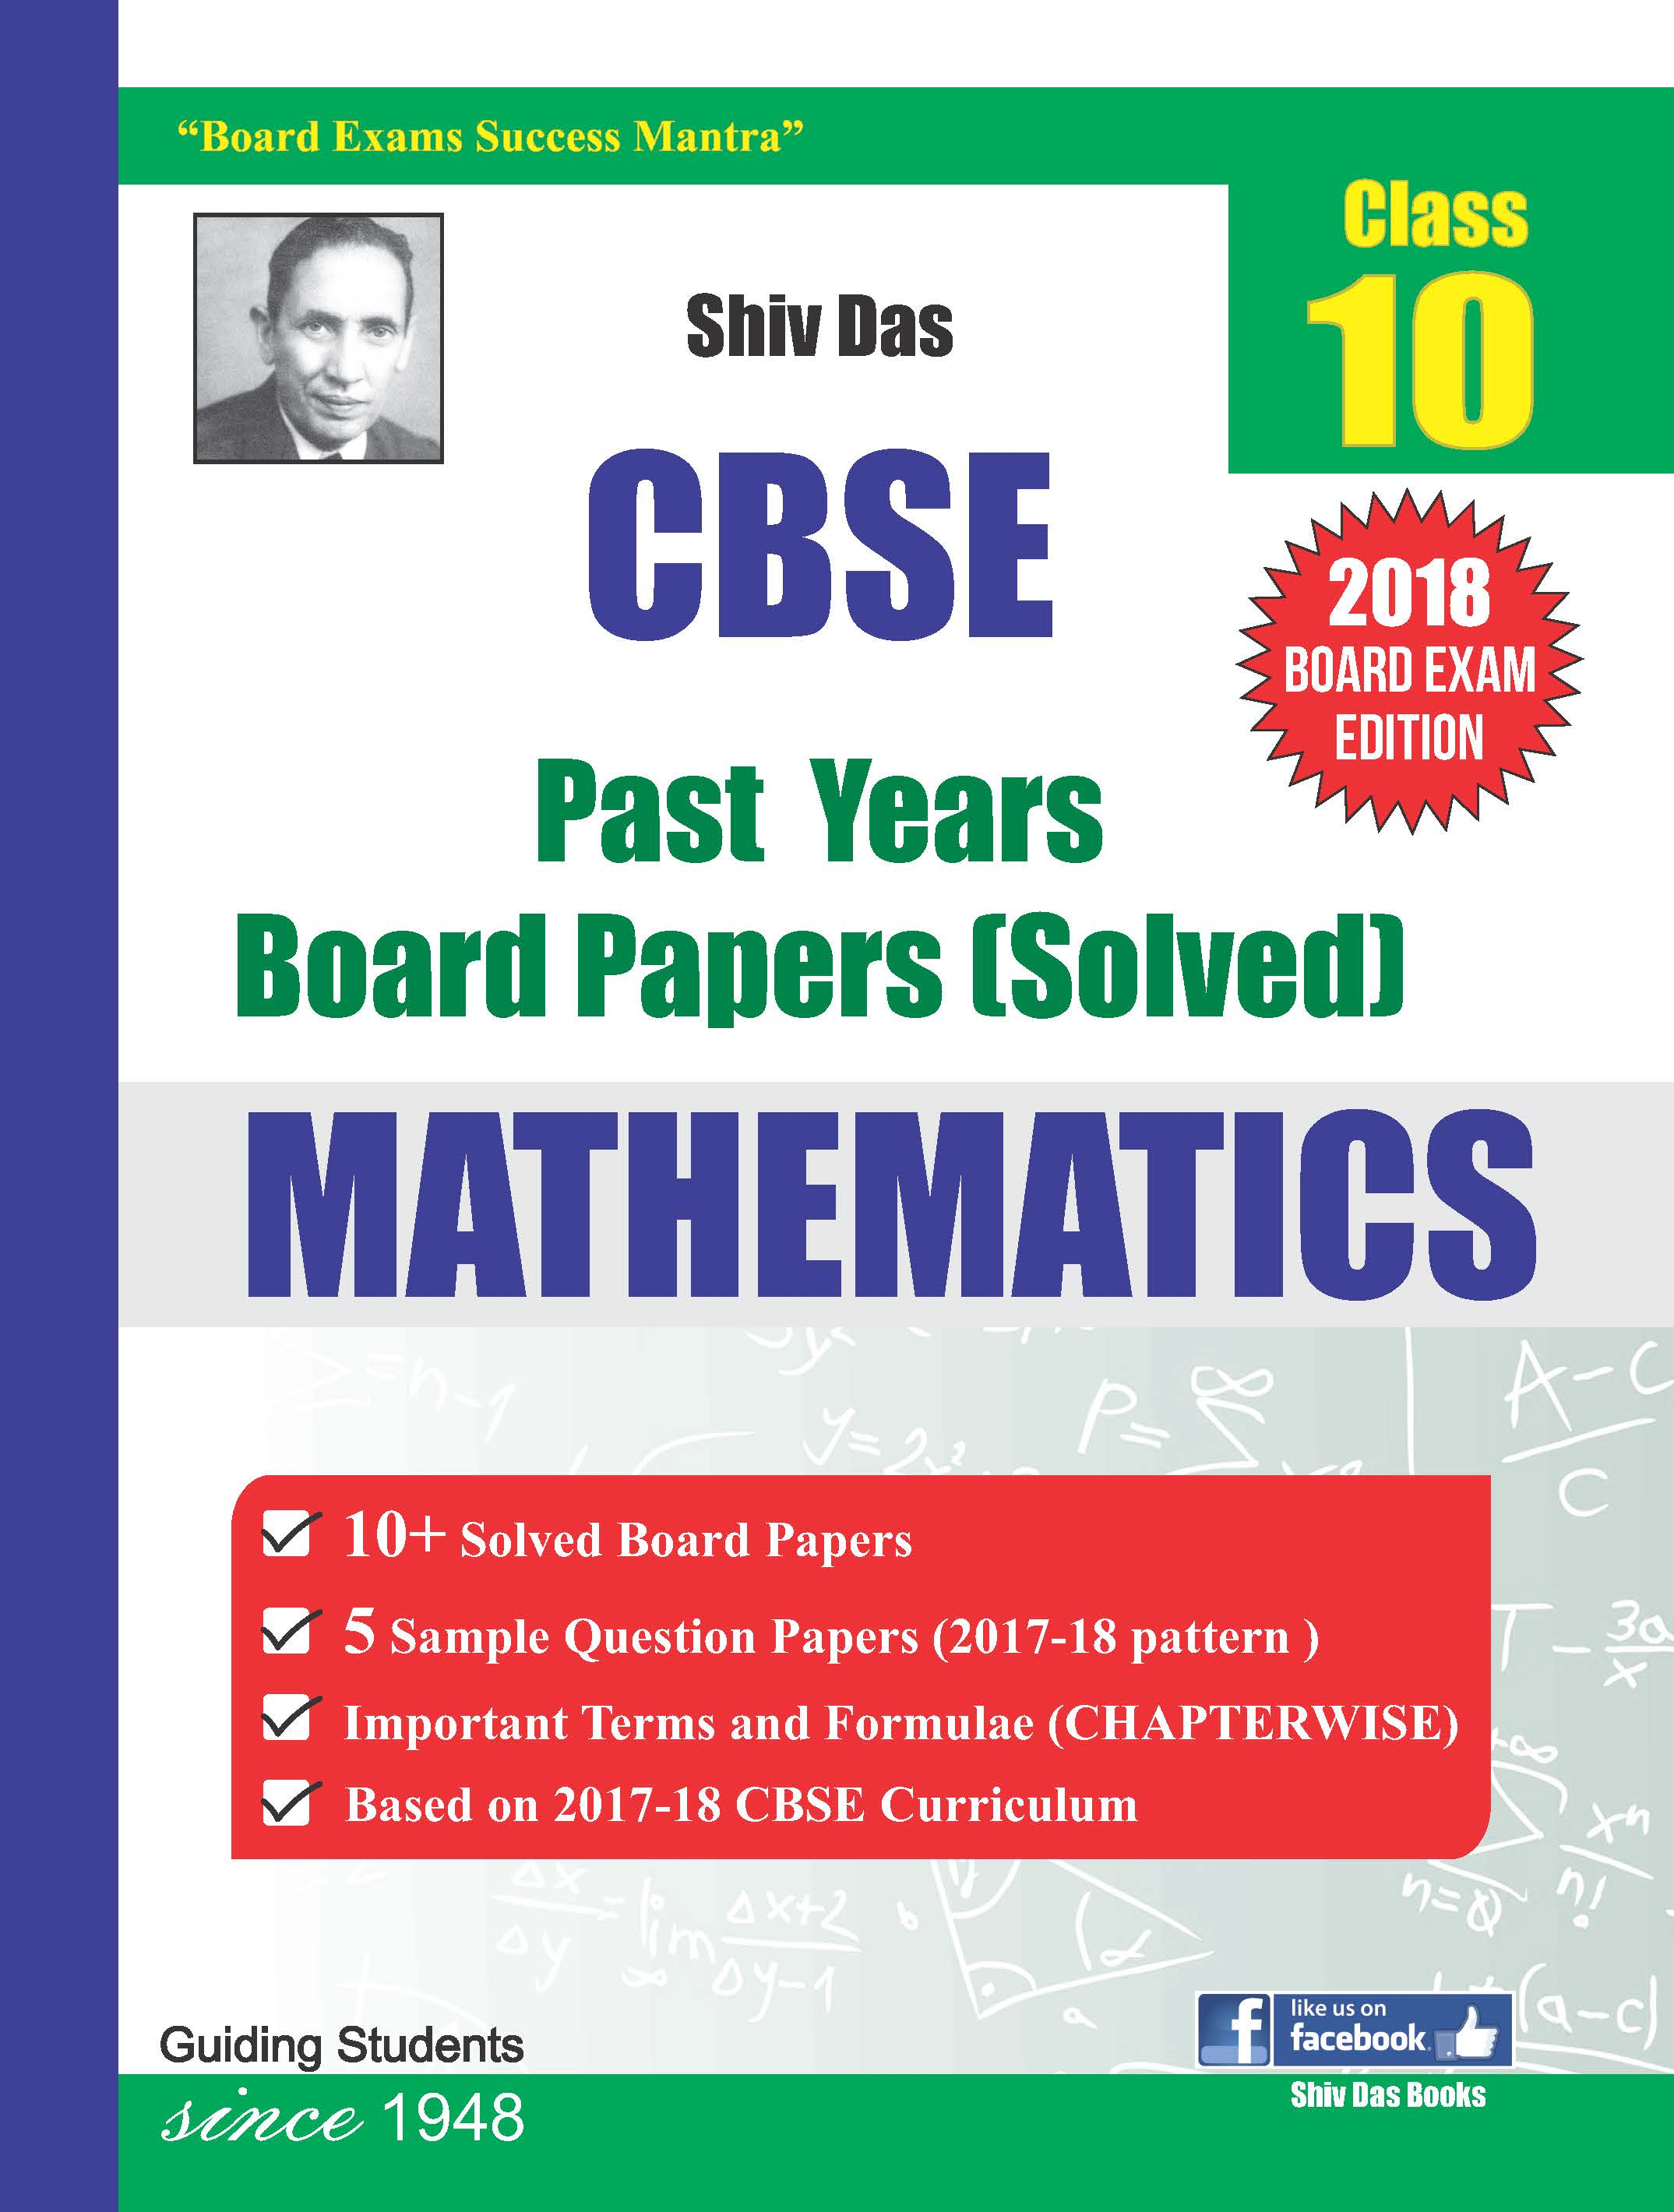 Class 10 CBSE Past Year Board Papers (Solved) Maths